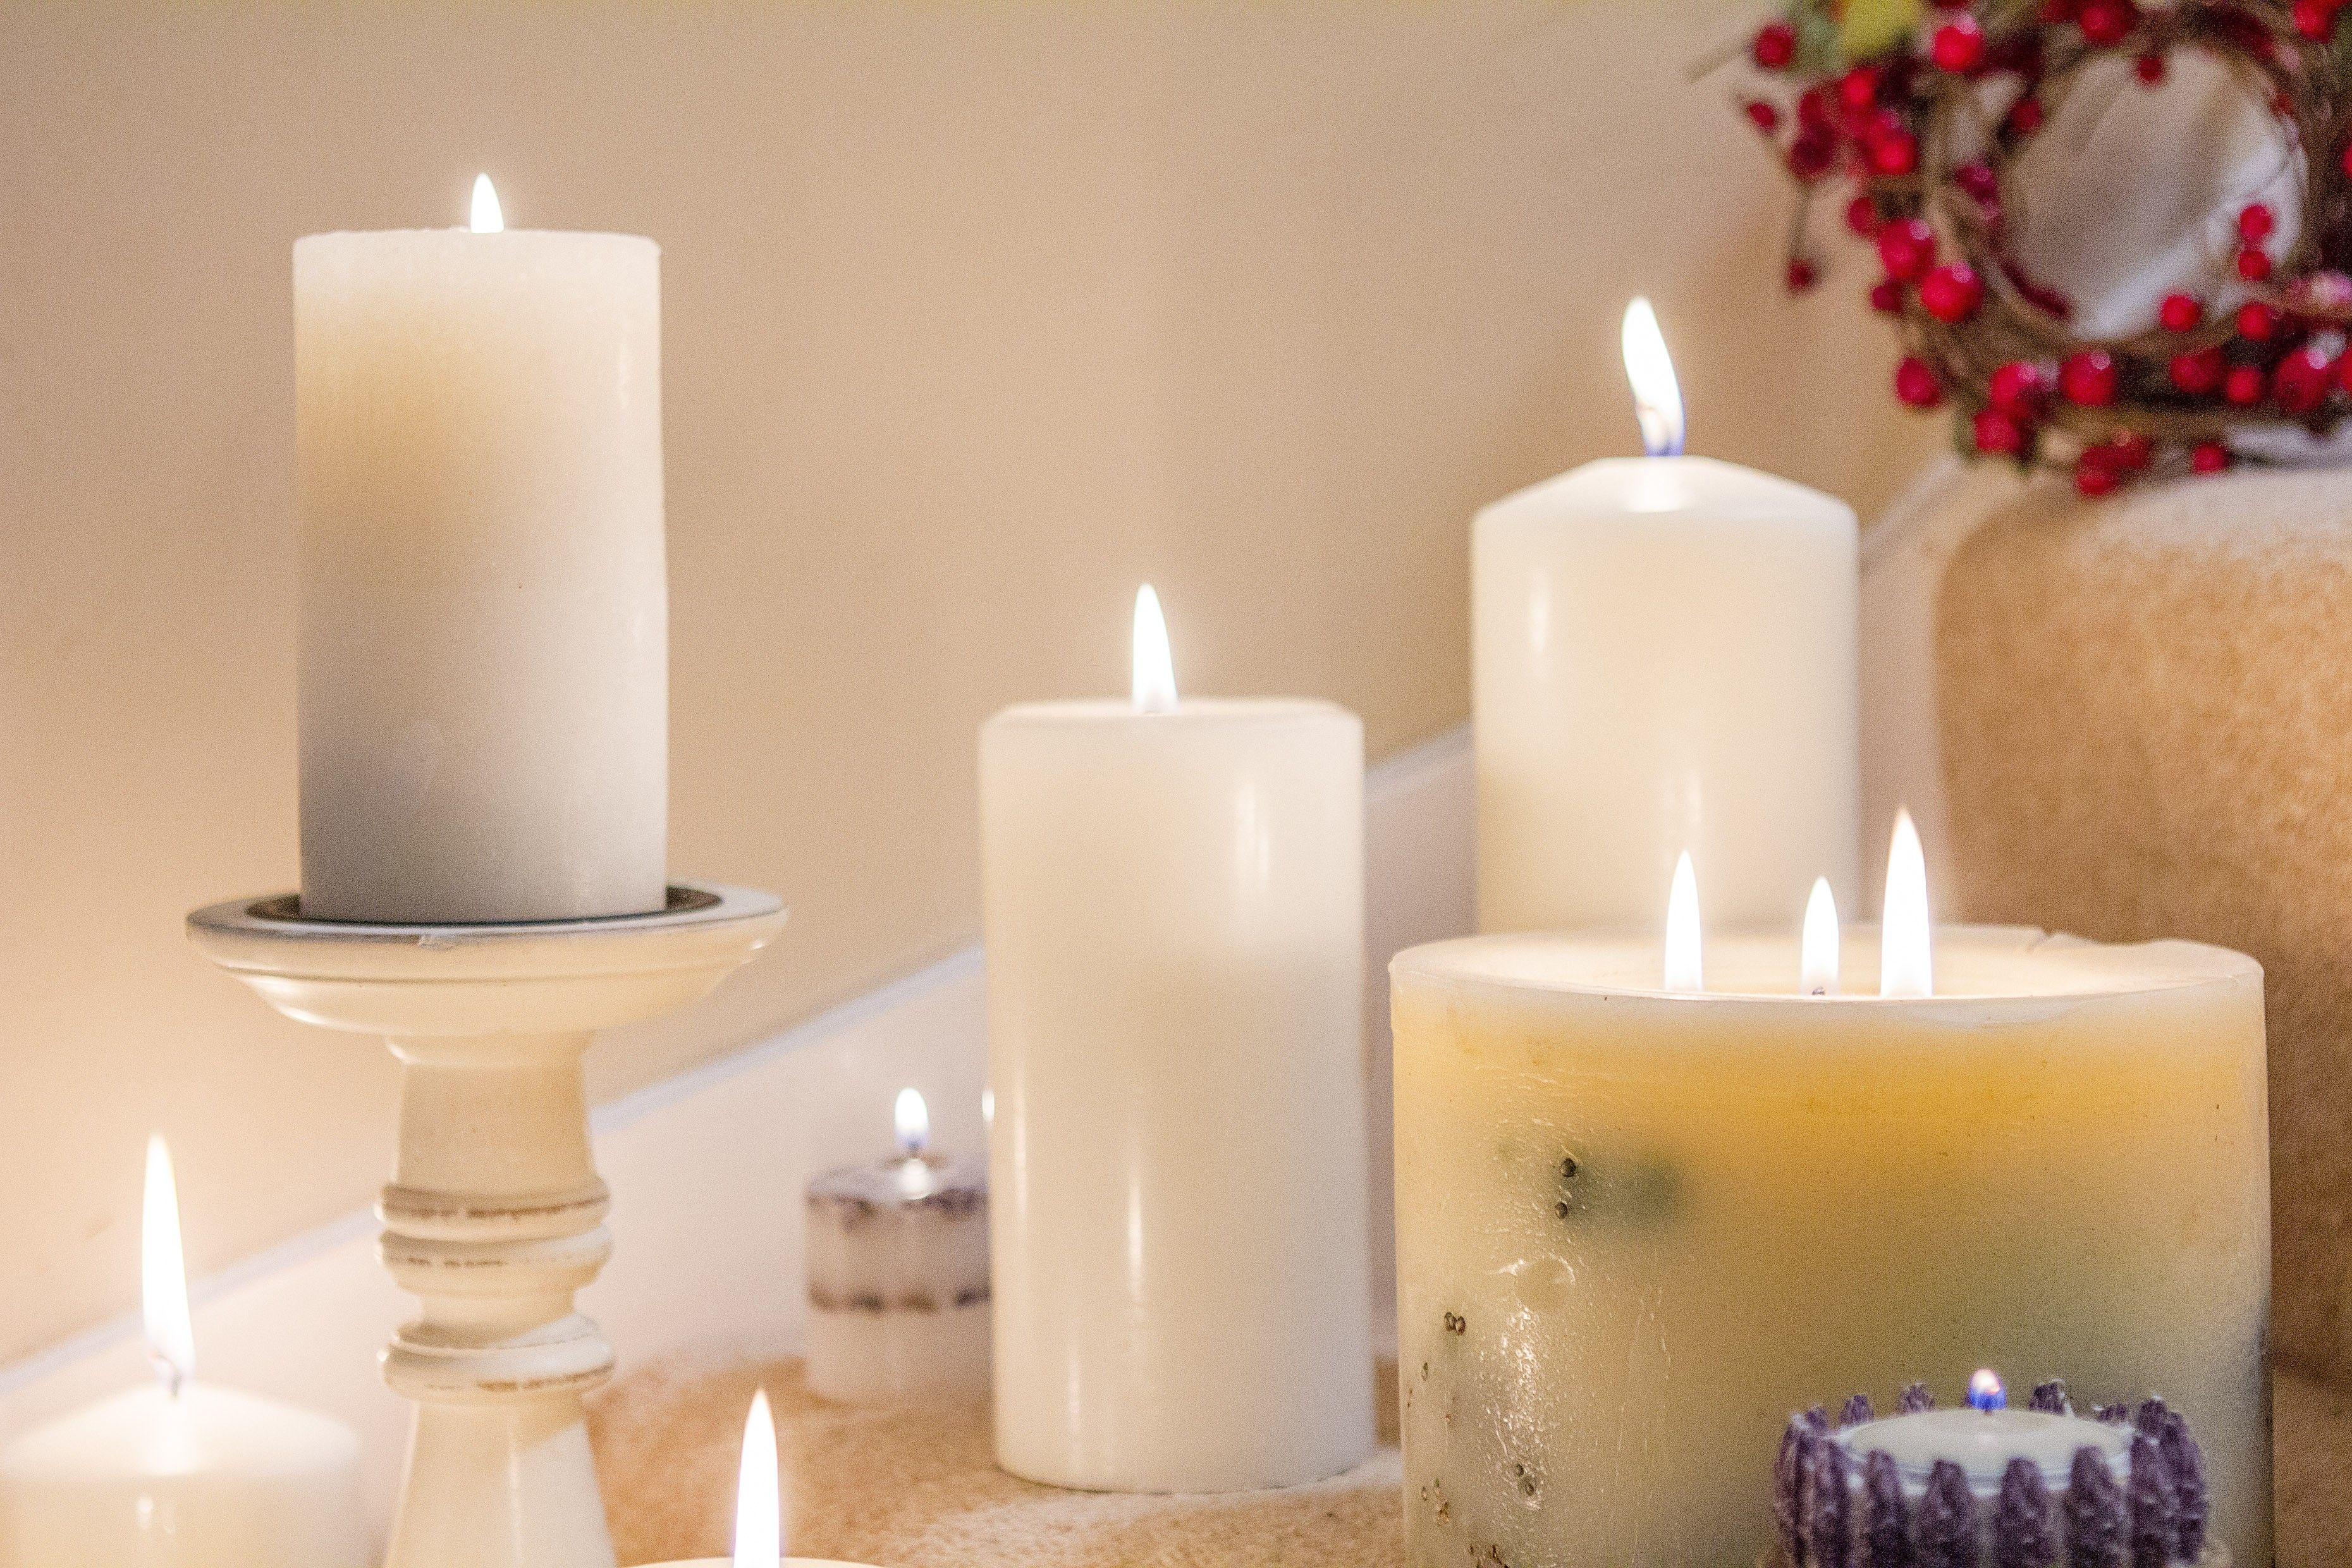 Kirstie Allsopp Candle Making Kit exclusively available at